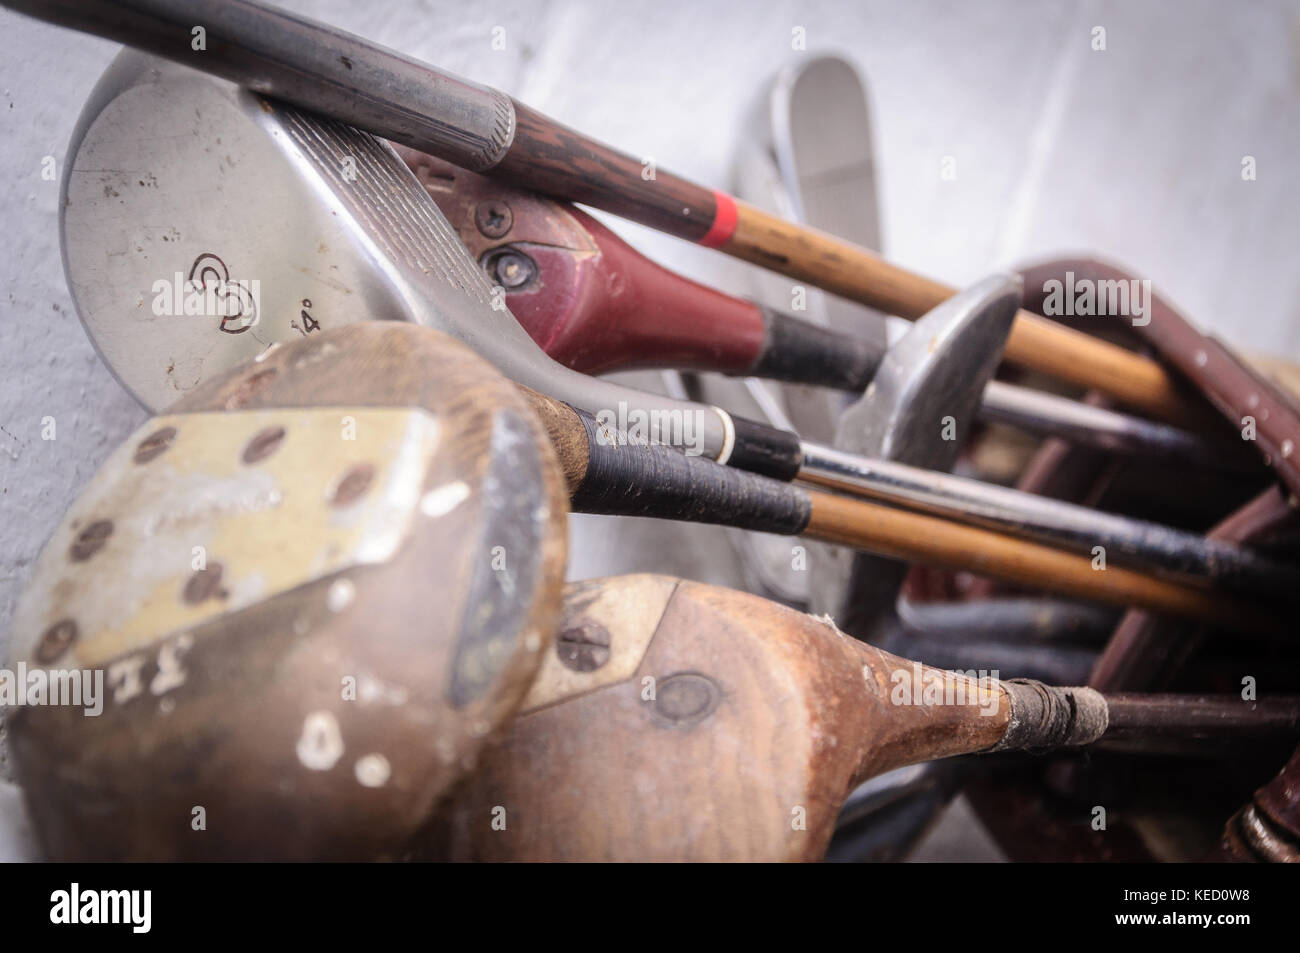 Vintage worn out golf clubs retired from use - Stock Image